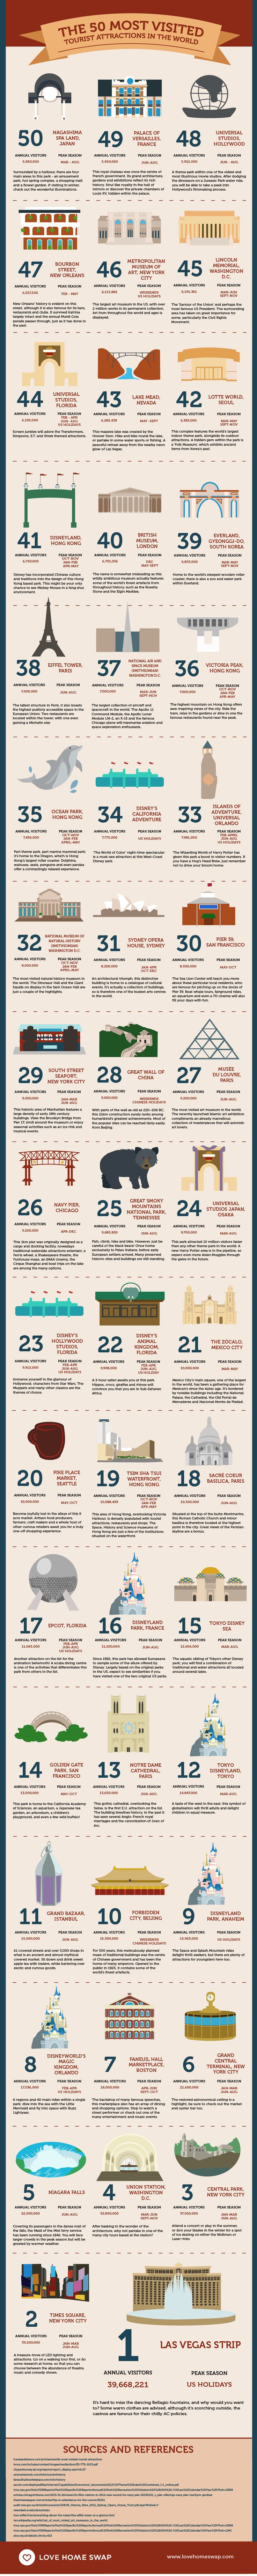 These are the 50 attractions that receive the most tourists each year.